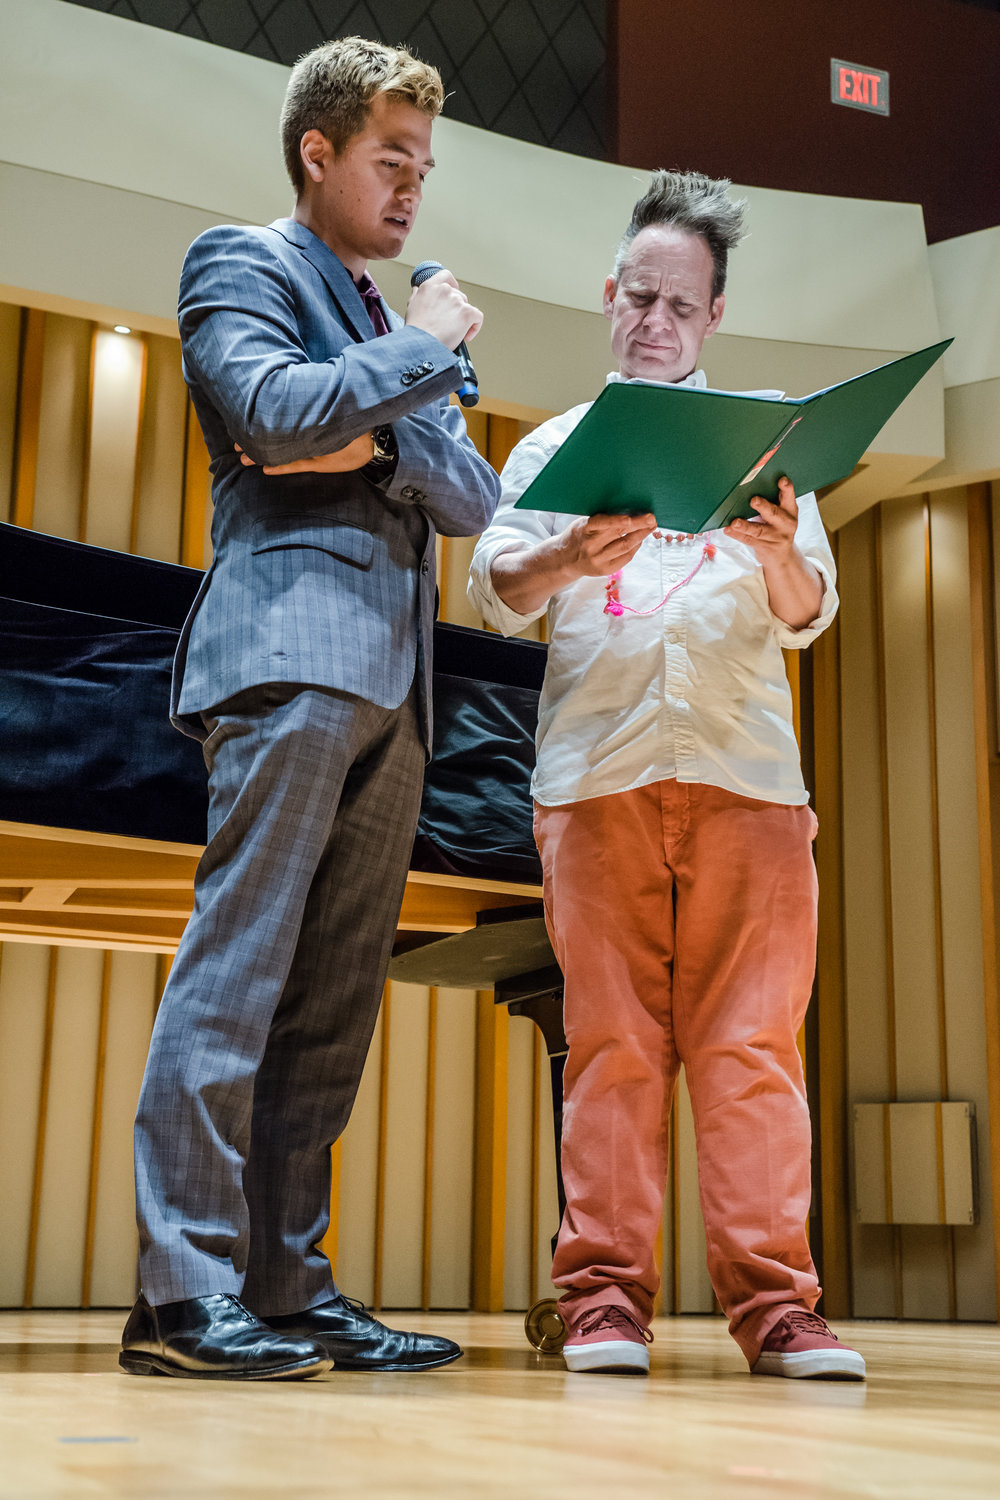 Studio Artist Cristobal Arias working with Peter Sellars in a master class.